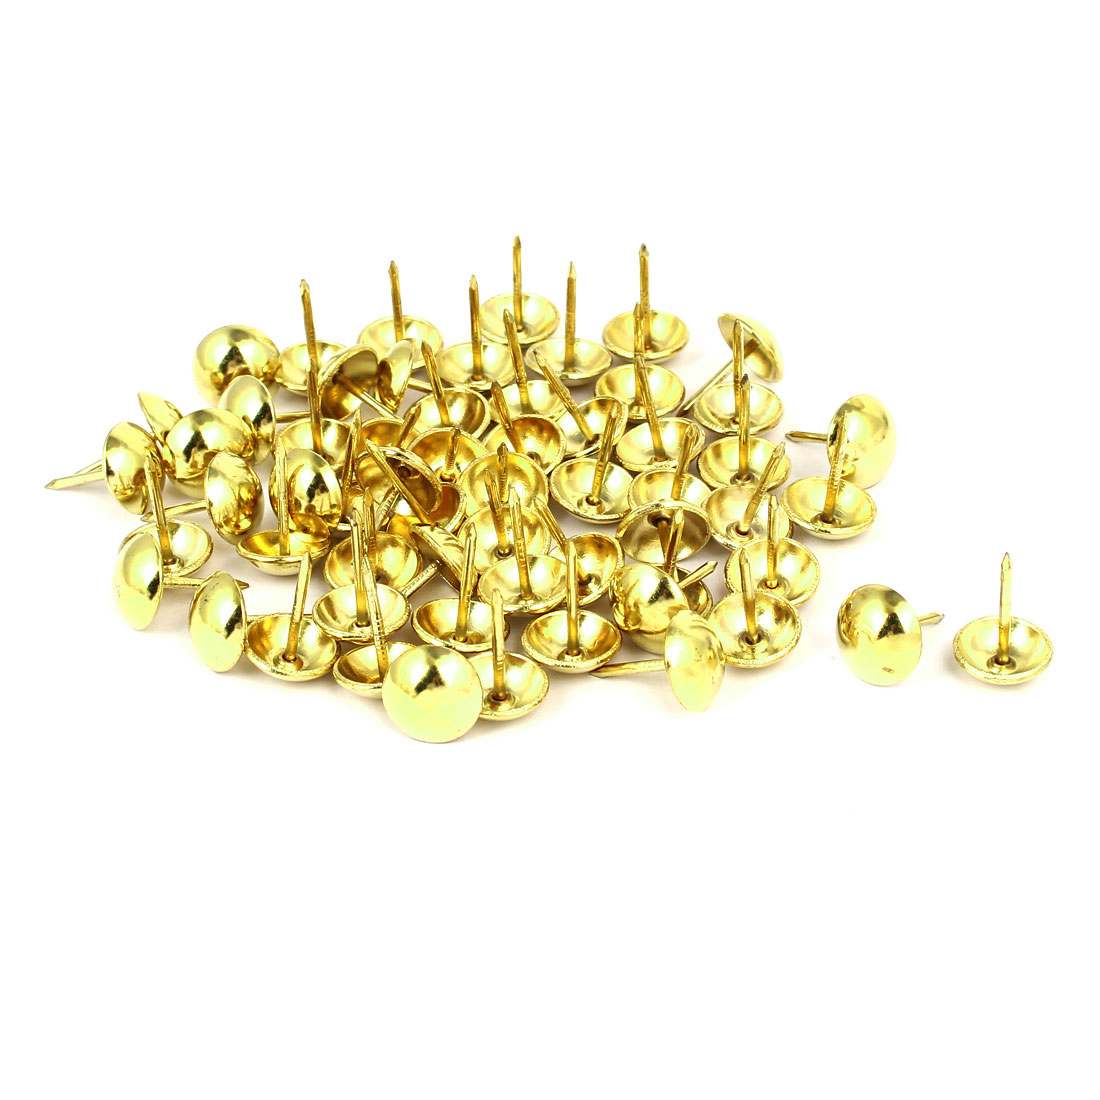 Home Furniture Upholstery Thumb Tack Nail Push Pin Gold Tone 12mm x 17mm 60pcs